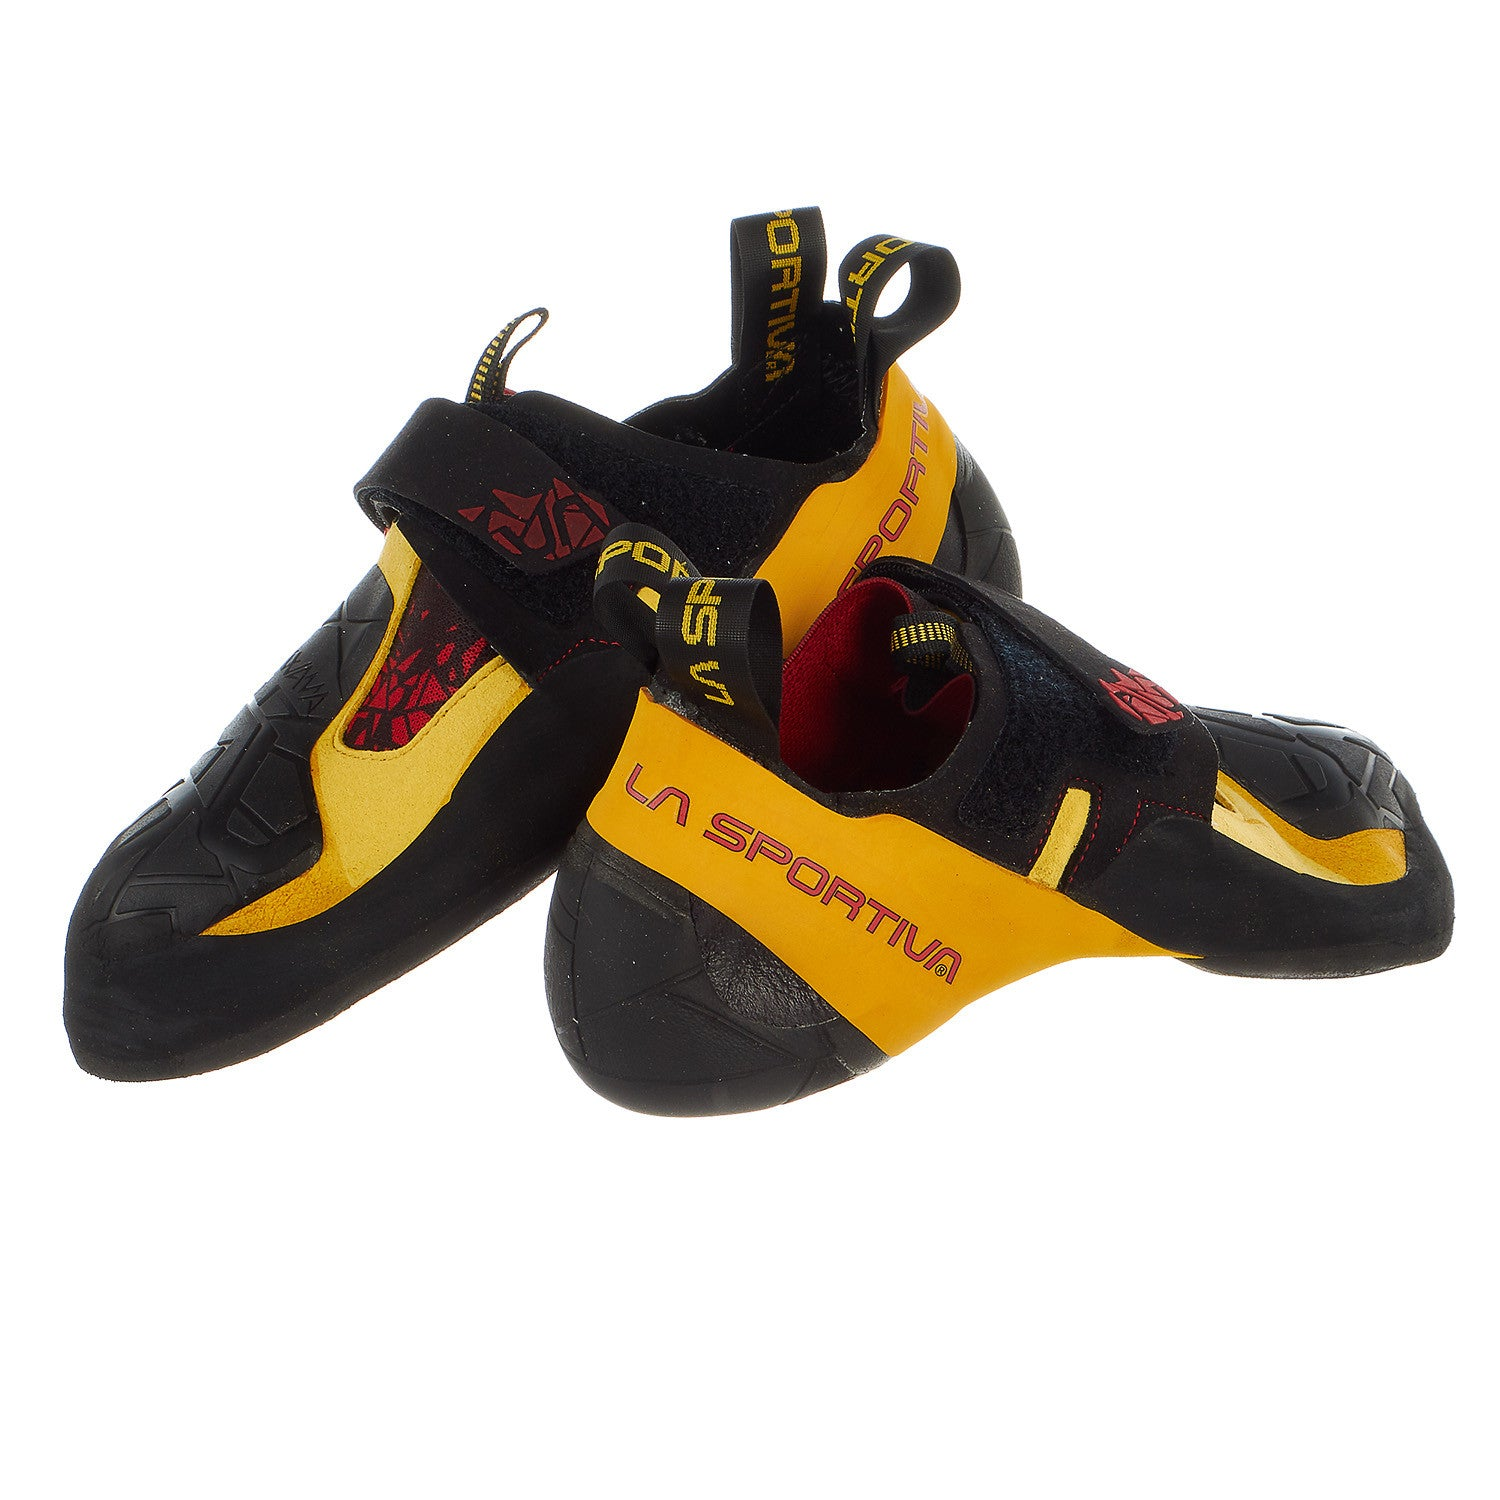 Black La Sportiva Men/'s Skwama Yellow 43.5